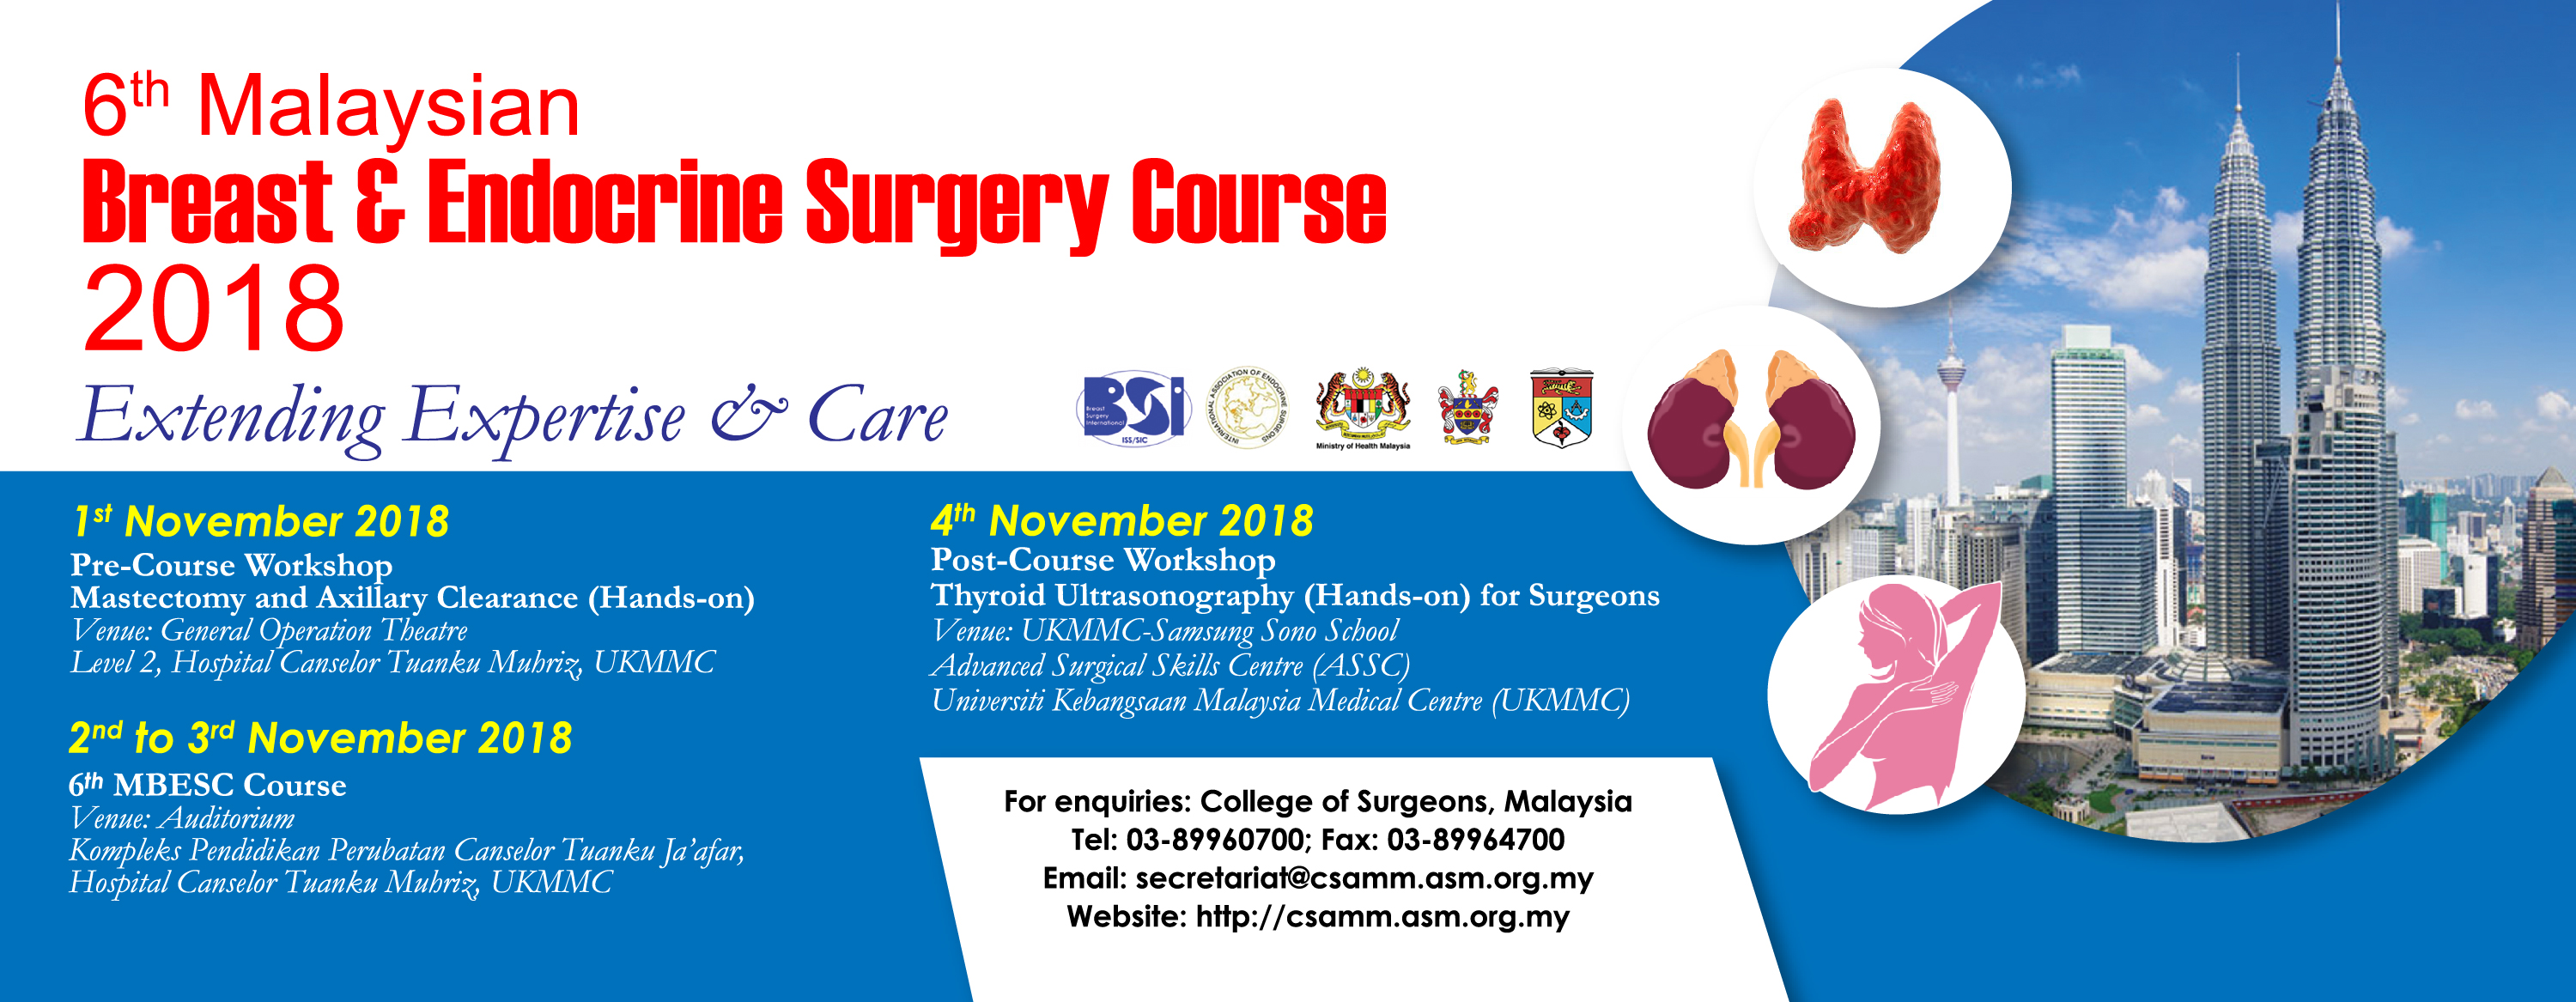 6th Malaysian Breast & Endocrine Surgery Course